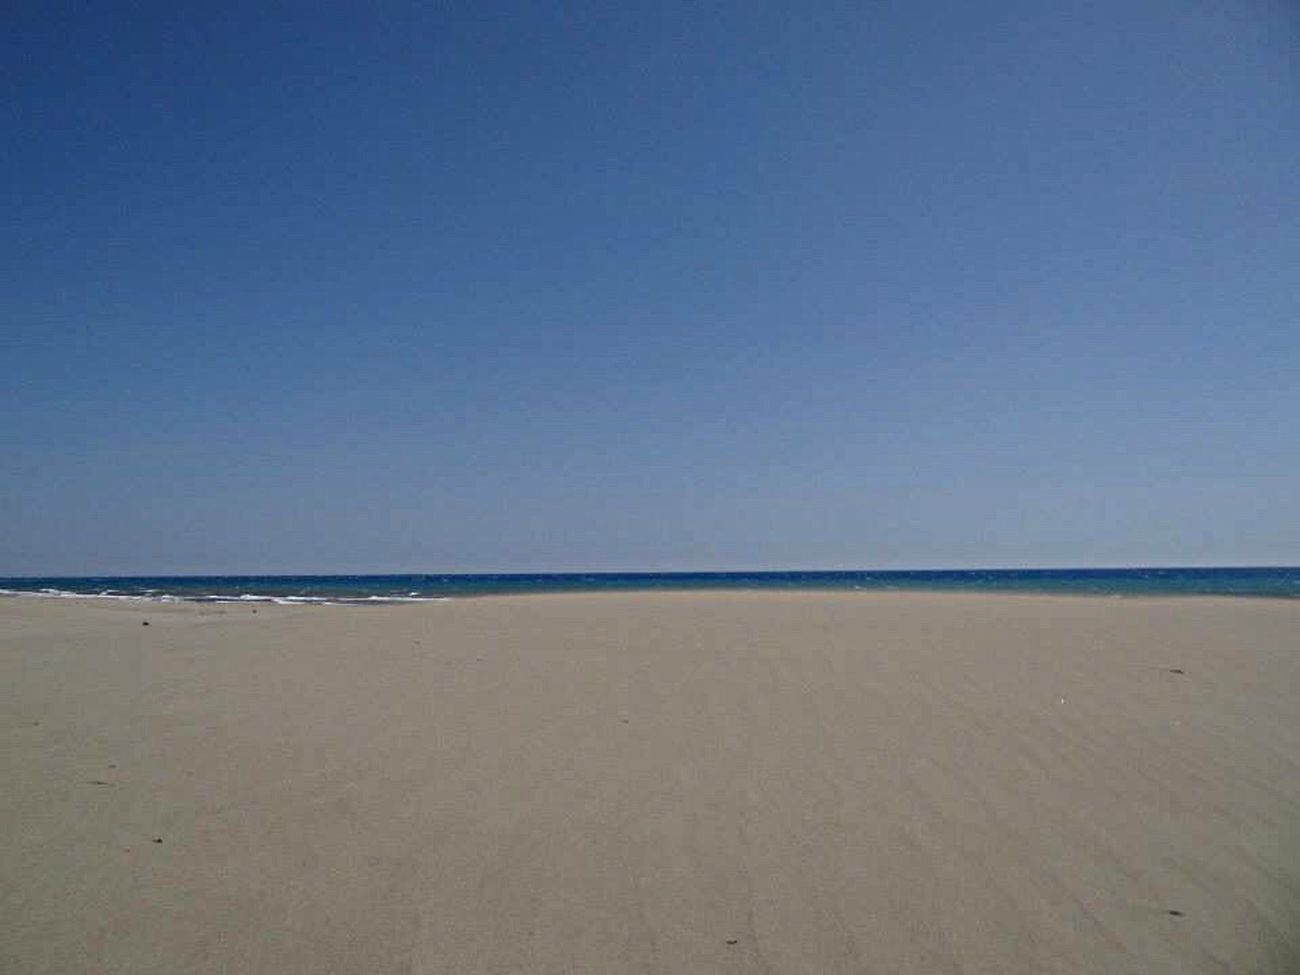 Beach Sand Sea Blue Horizon Over Water Clear Sky Tranquil Scene Scenics Water Non-urban Scene Beauty In Nature Seascape Turkey Patarabeach Patara Calm Sandy Beach Faces Of Summer EyeEm Gallery Lykia Turkeyphotooftheday No People